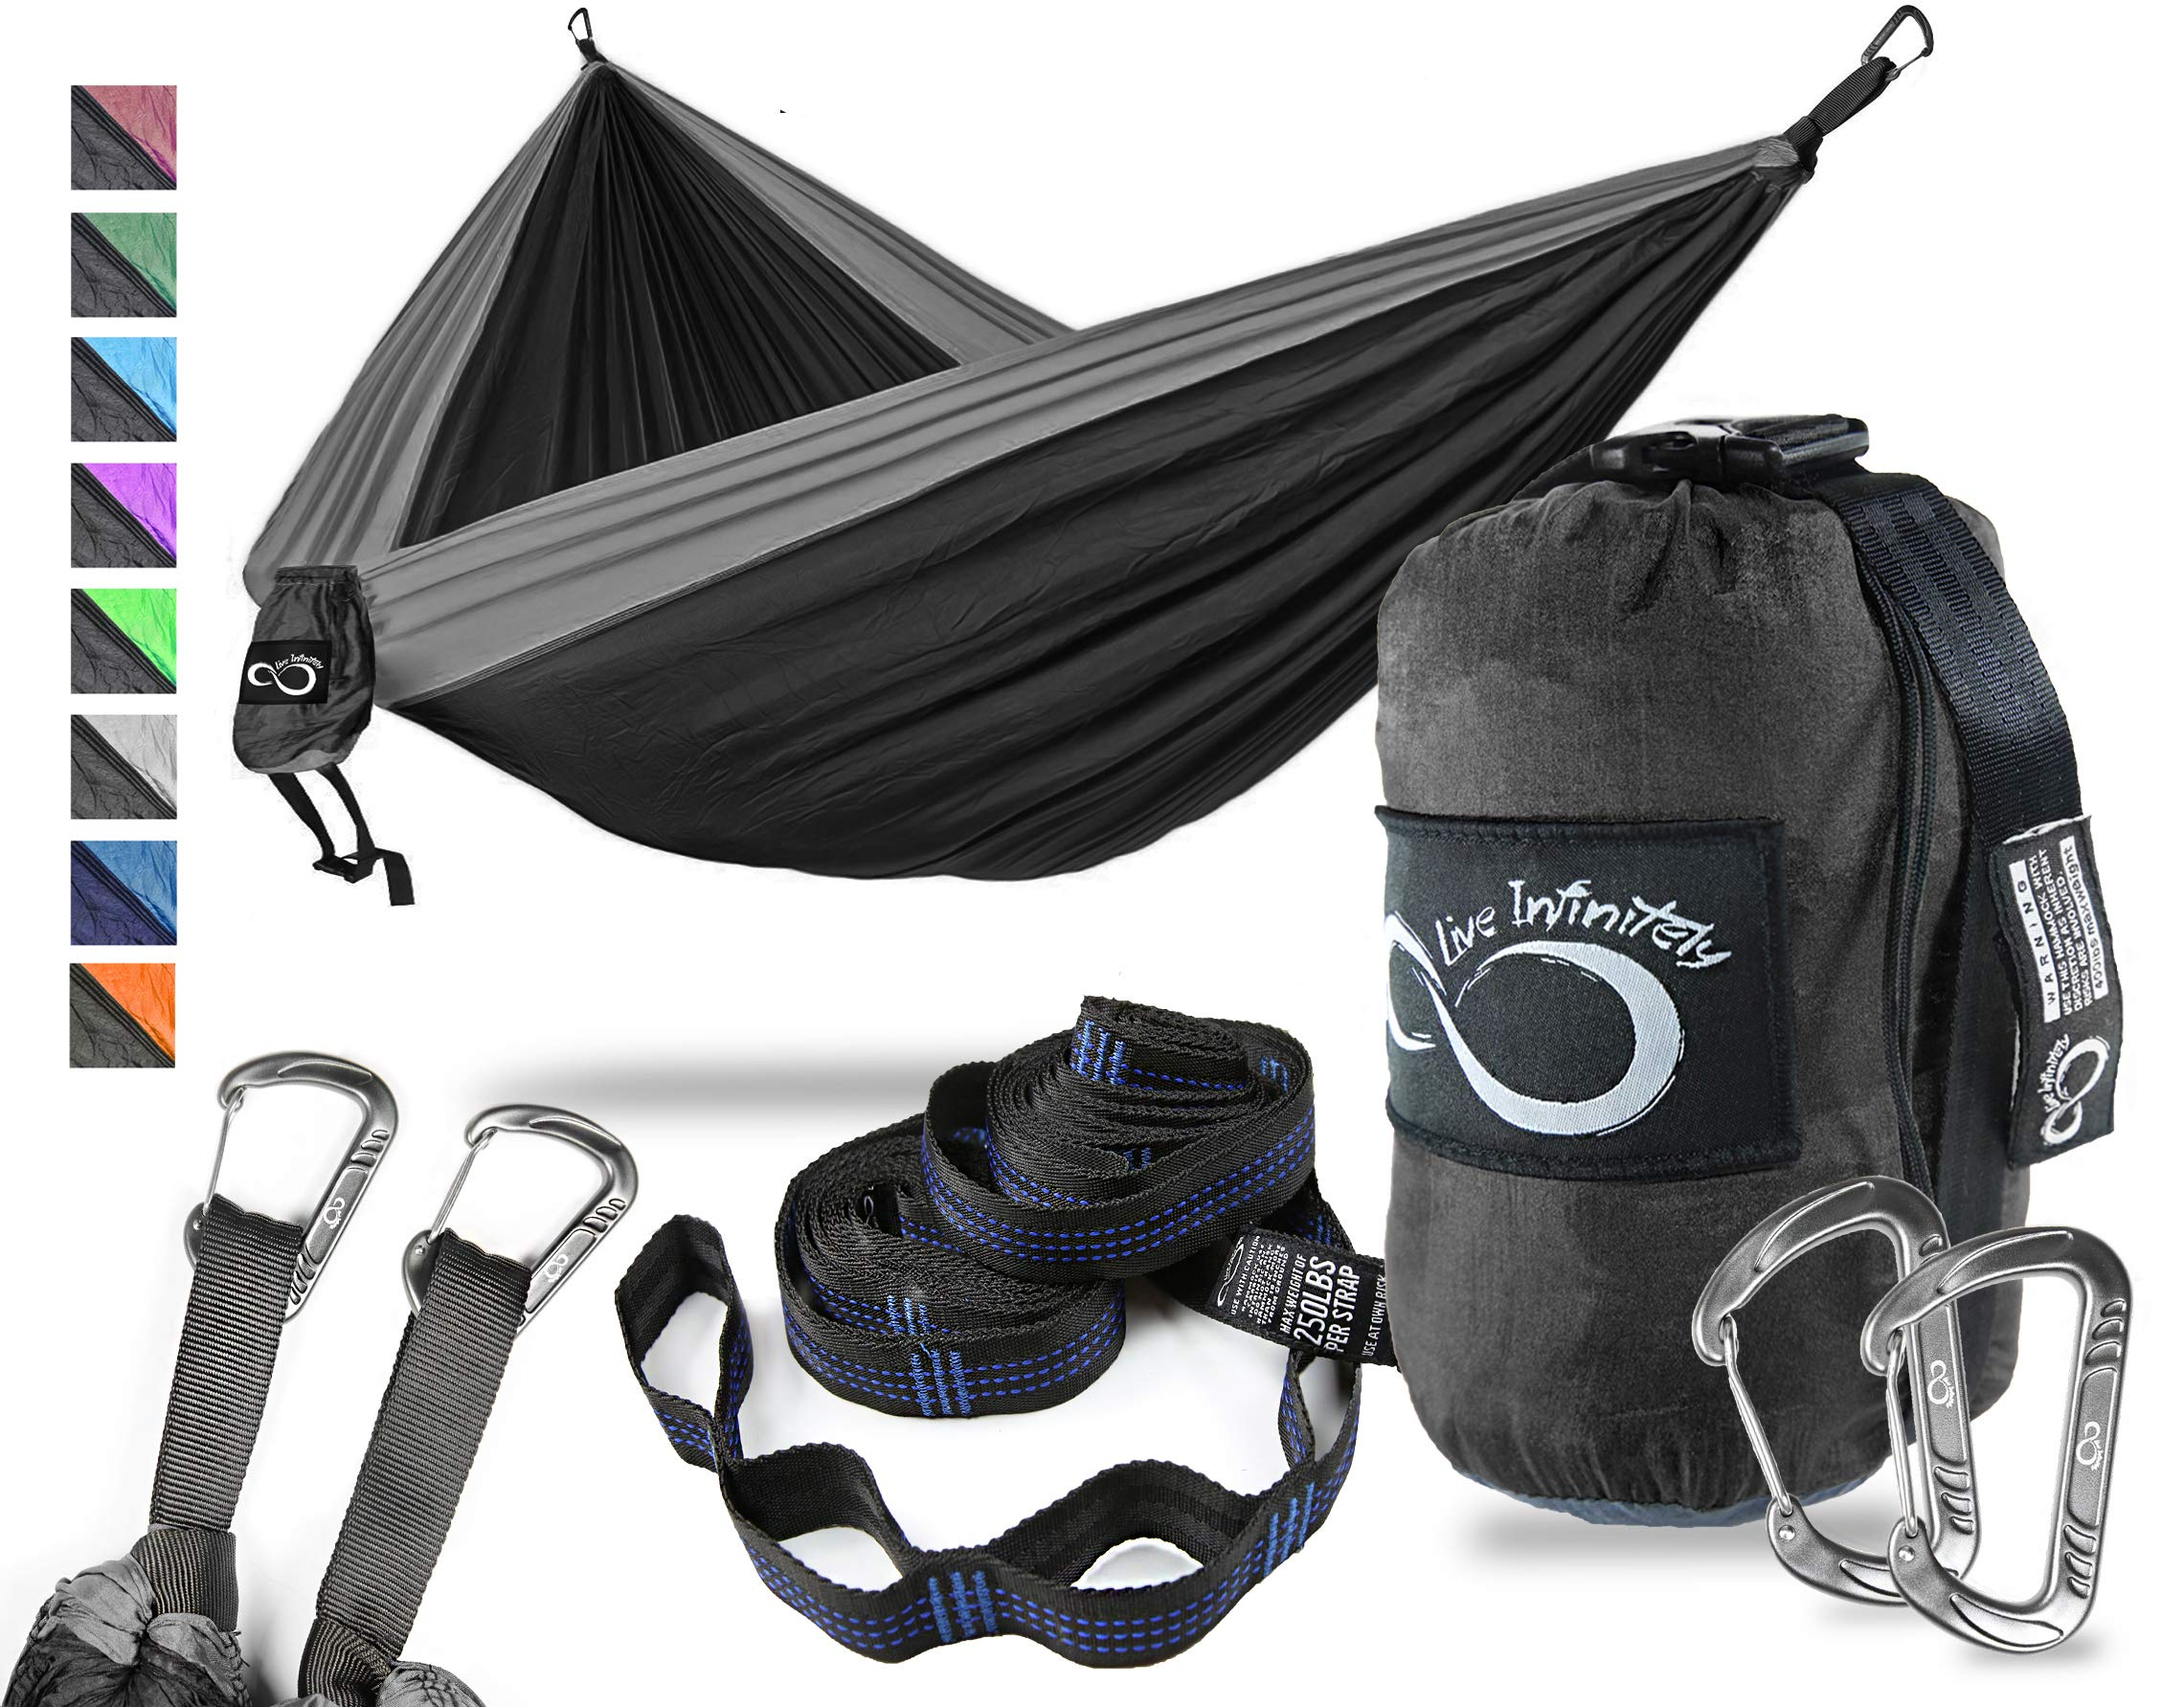 Double Camping Hammock- Best Lightweight & Portable Two Person Hammock Set -Aluminum Wiregate Carabiners, 2- 16 Loop Tree Straps & Compression Strap- Holds 500 LBS -Ideal for Travel Black Middle by Live Infinitely